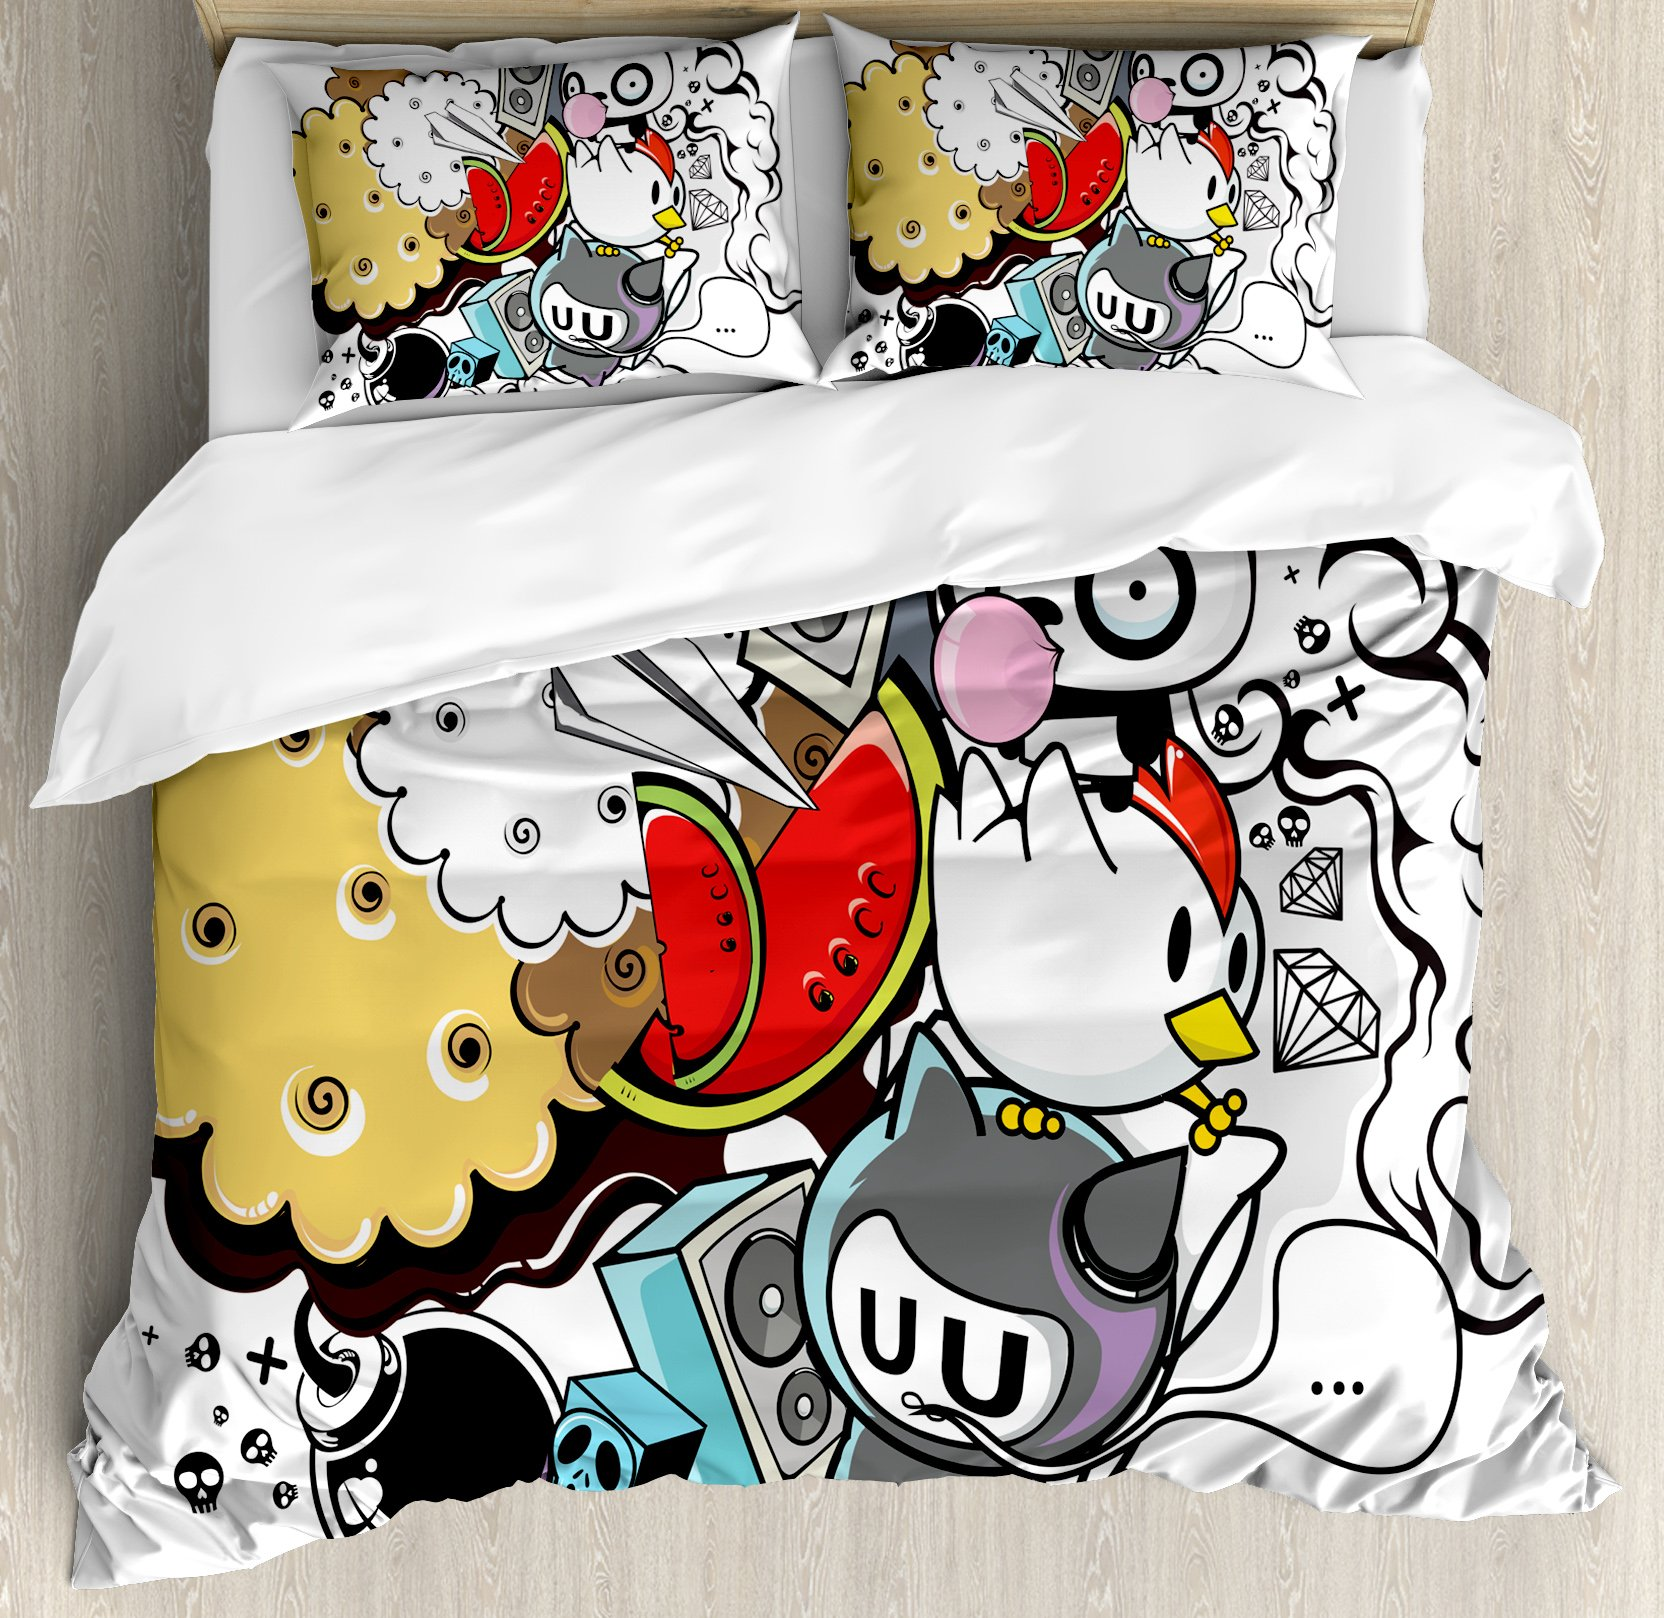 Indie Queen Size Duvet Cover Set by Ambesonne, Animal and Food Themed Composition Crazy Festive Doodle Panda Bird Cat Watermelon, Decorative 3 Piece Bedding Set with 2 Pillow Shams, Multicolor